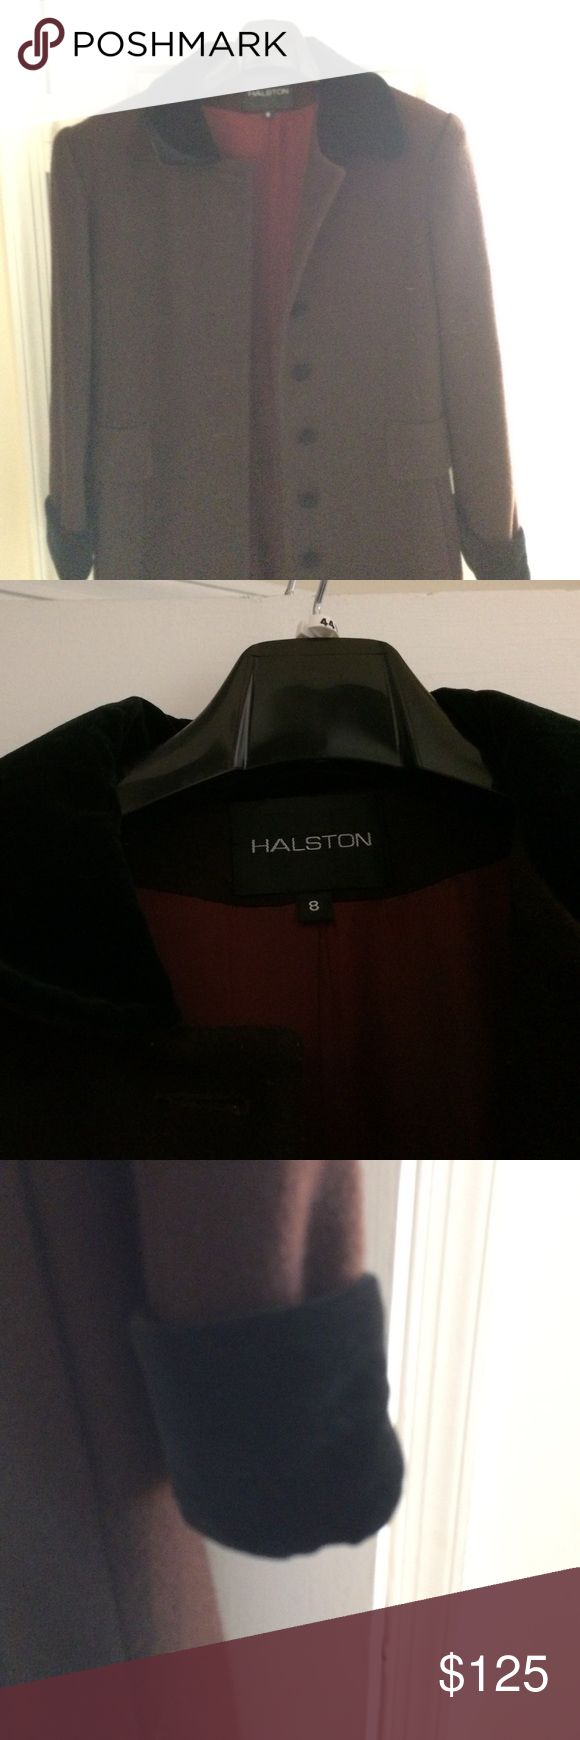 Vintage Halston Wool Winter Coat This is a gorgeous size 8 Halston full-length winter wool coat with a velvet collar and cuffs. It also has velvet-covered buttons, two side pockets and is fully lined. It belonged to my grandmother but is in pristine shape. Halston Heritage Jackets & Coats